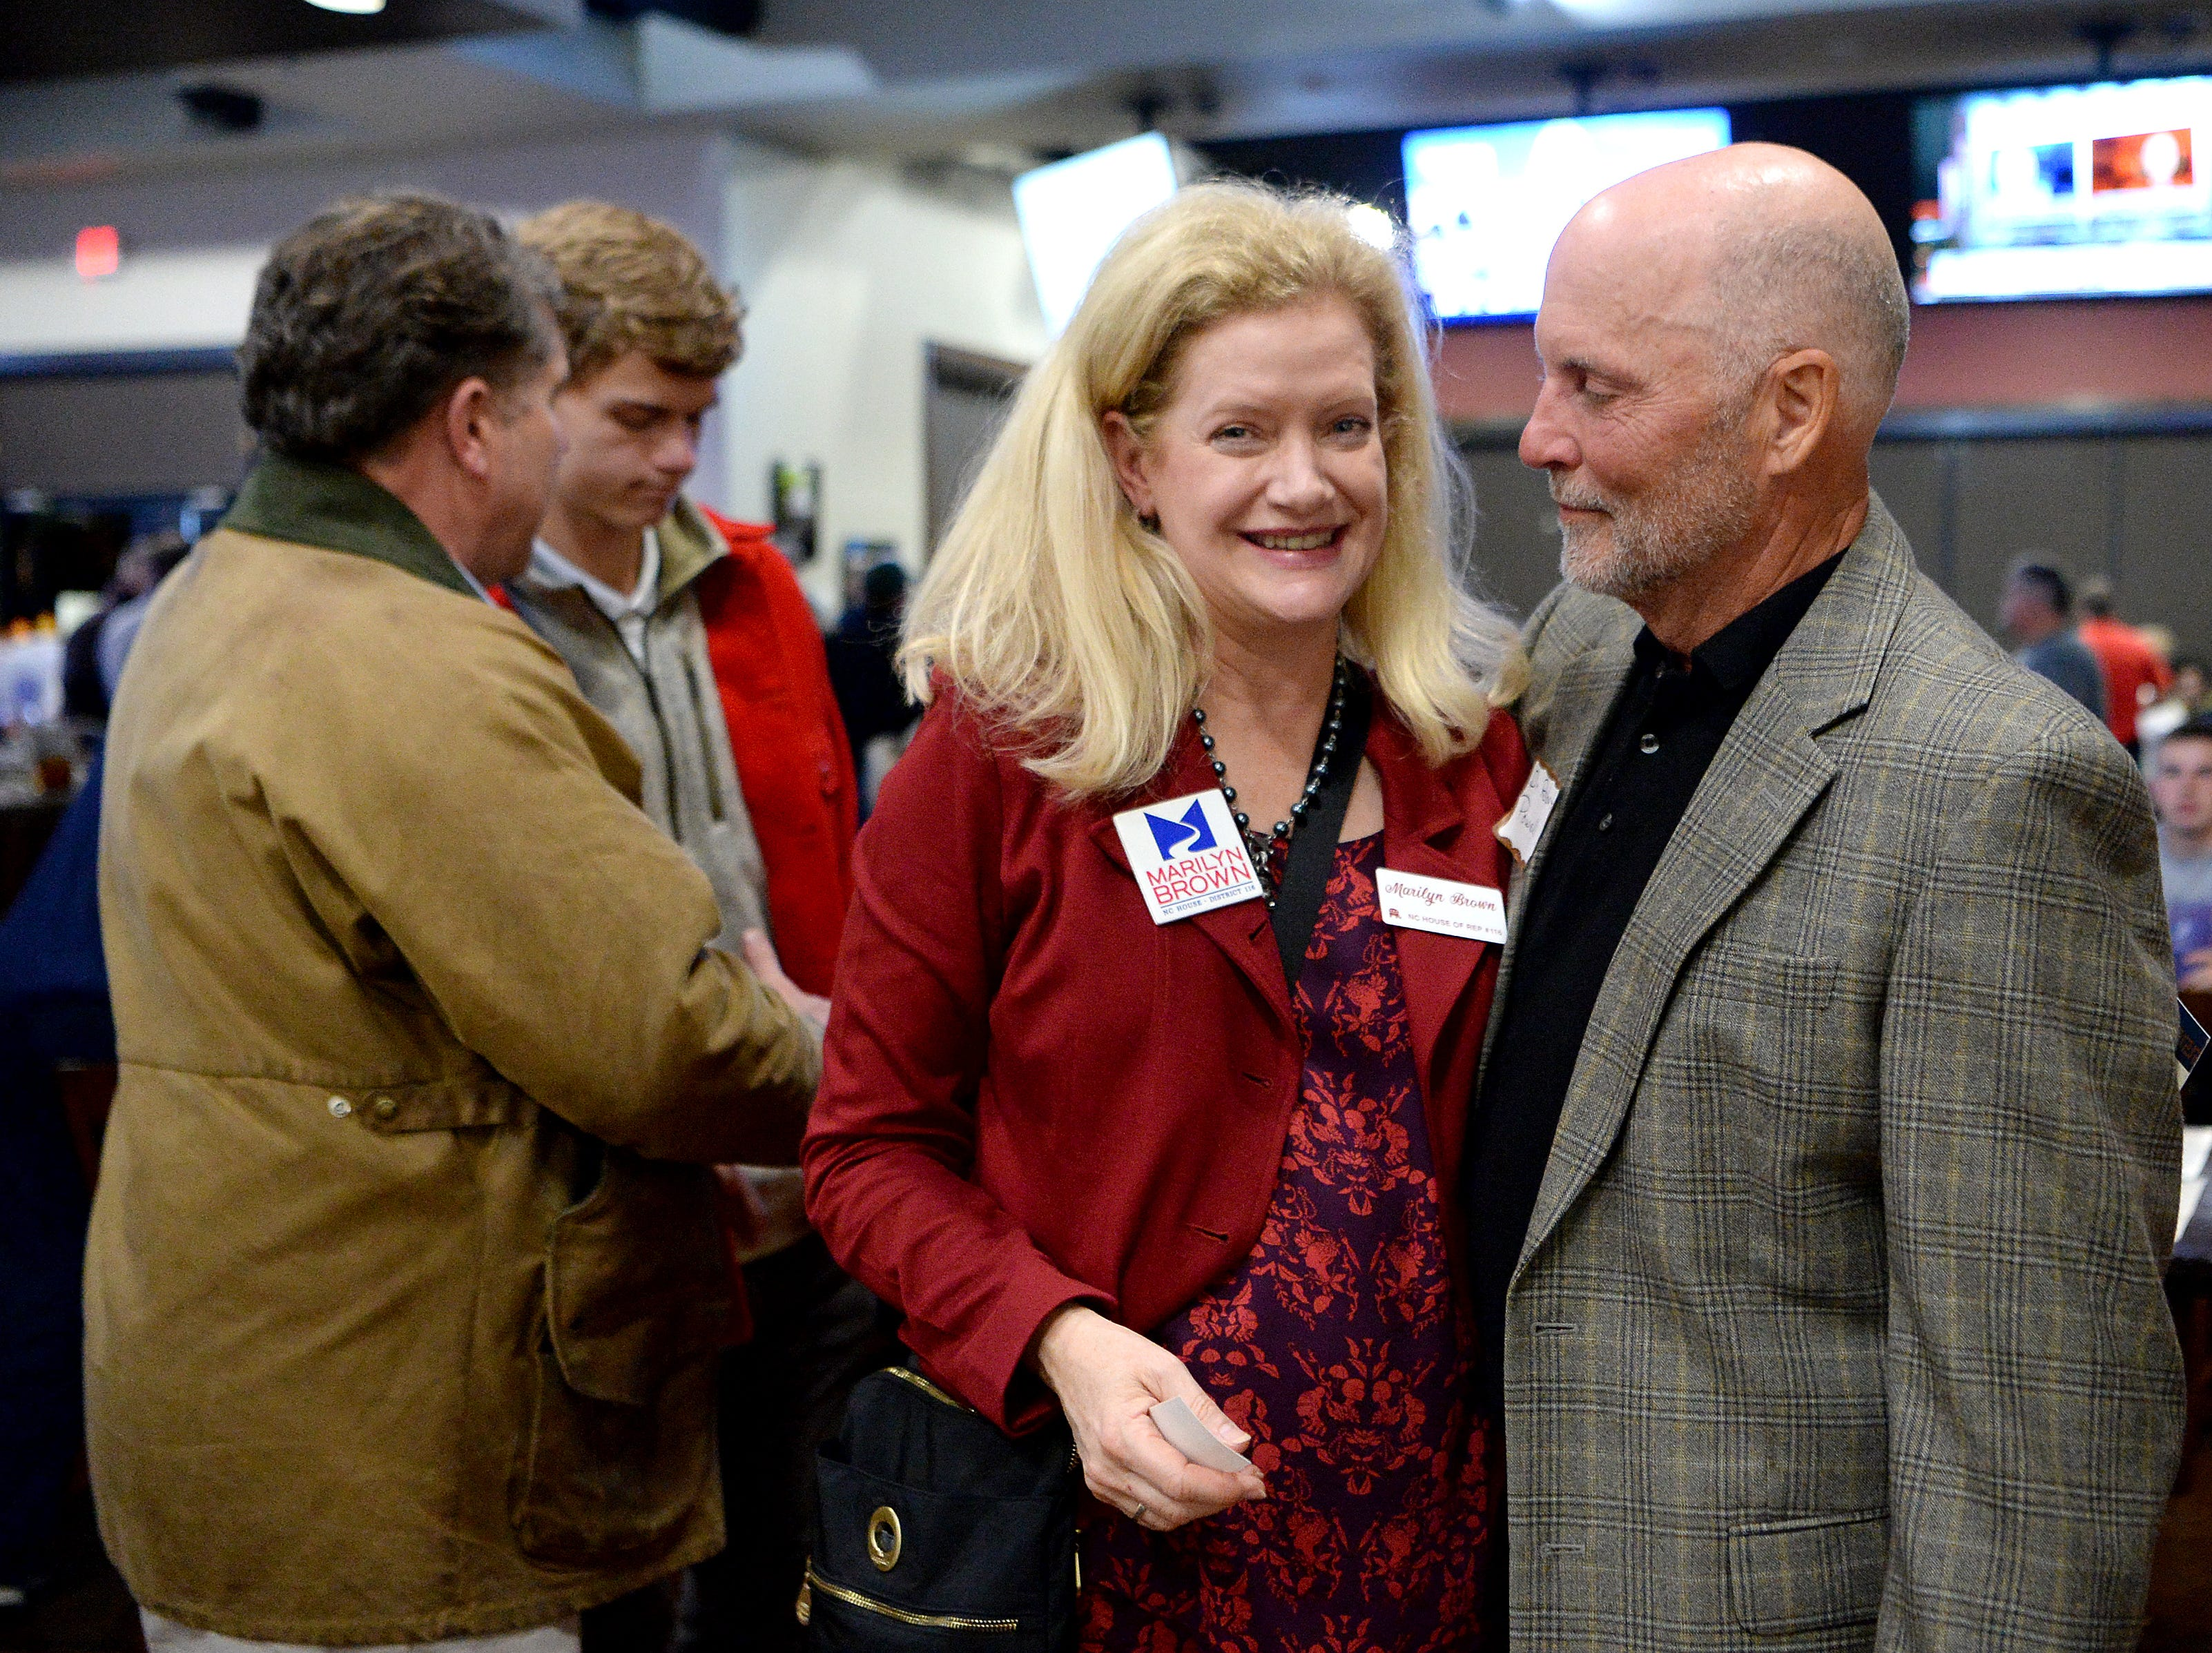 Marilyn Brown, North Carolina House of Representatives Republican candidate for District 116, talks with Robert Powell during an election results watch party for the Buncombe County Republicans at Twisted Laurel on Nov. 6, 2018.